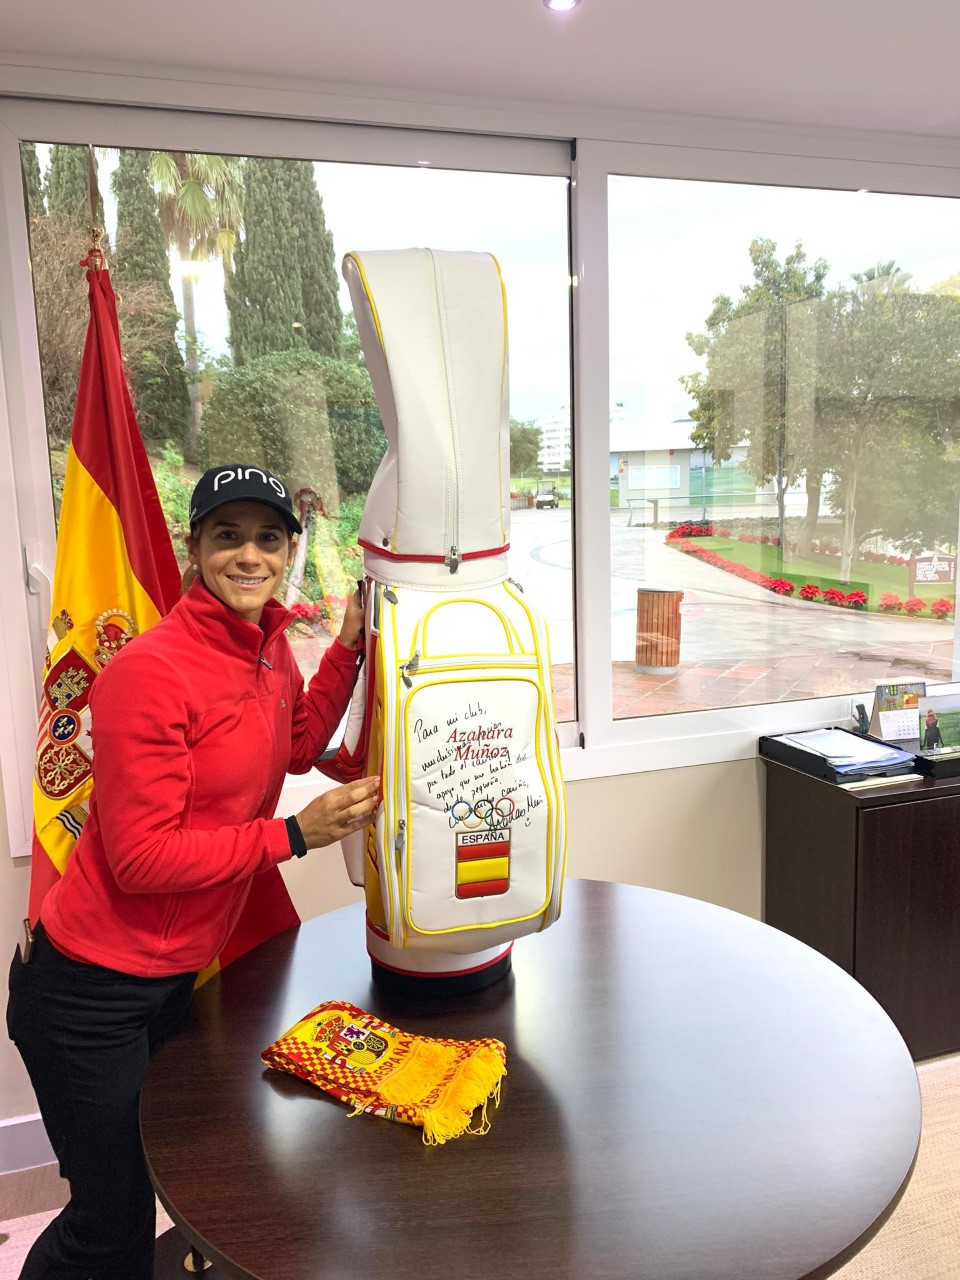 Azahara Muñoz gives us the bag she used in Rio 2016 Olympic Games